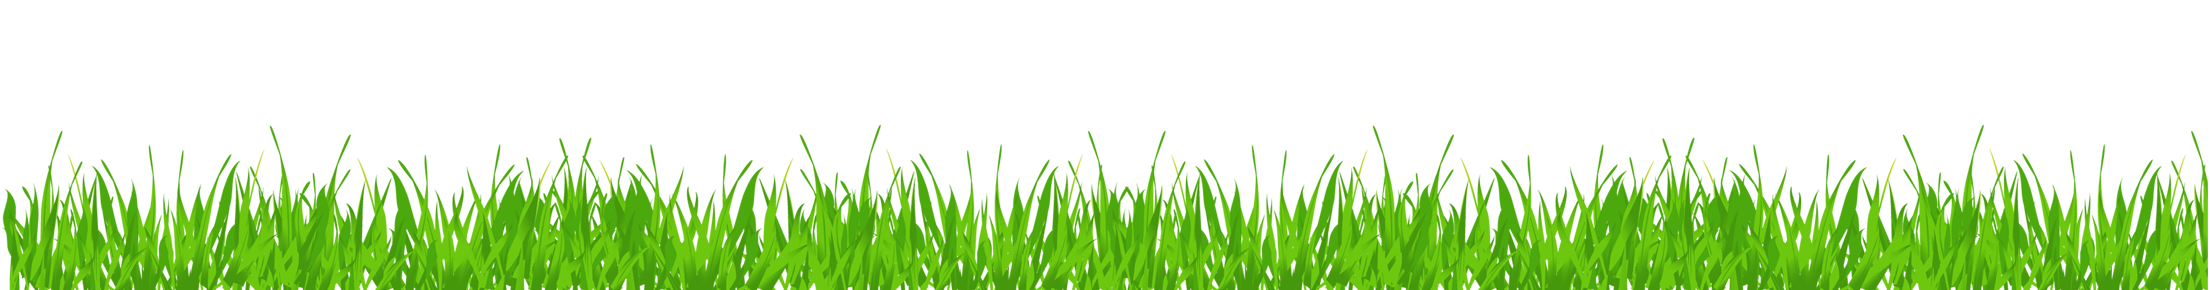 Png gallery yopriceville high. Clipart grass banner